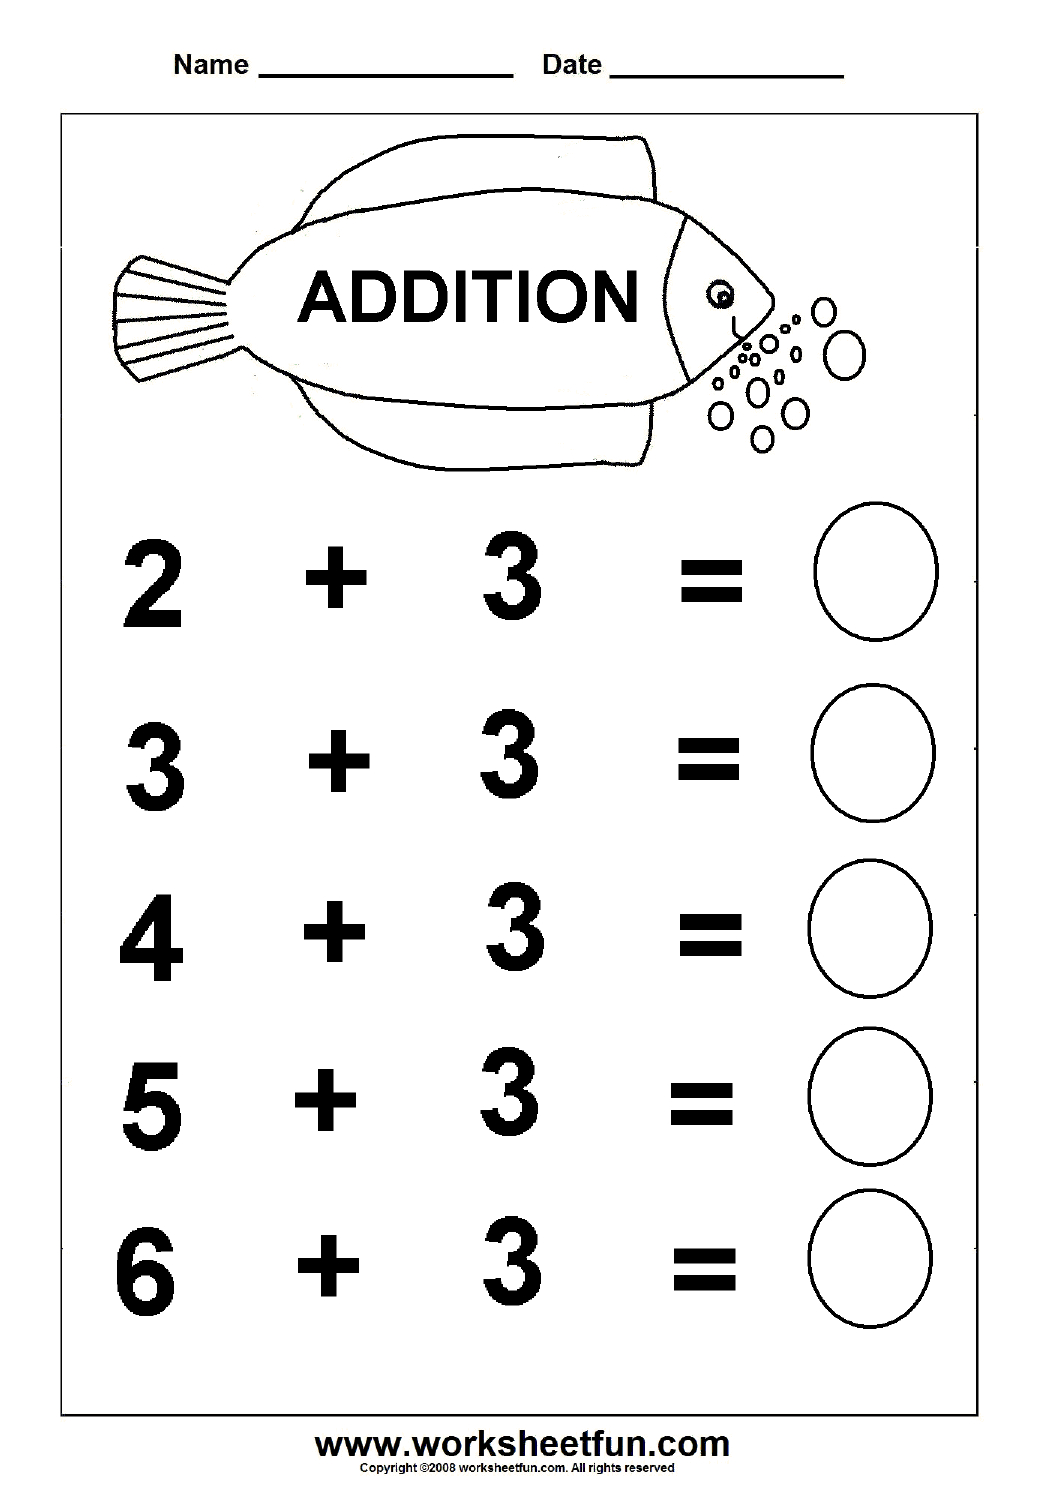 Beginner Addition – 6 Kindergarten Addition Worksheets / Free - Free Printable Simple Math Worksheets